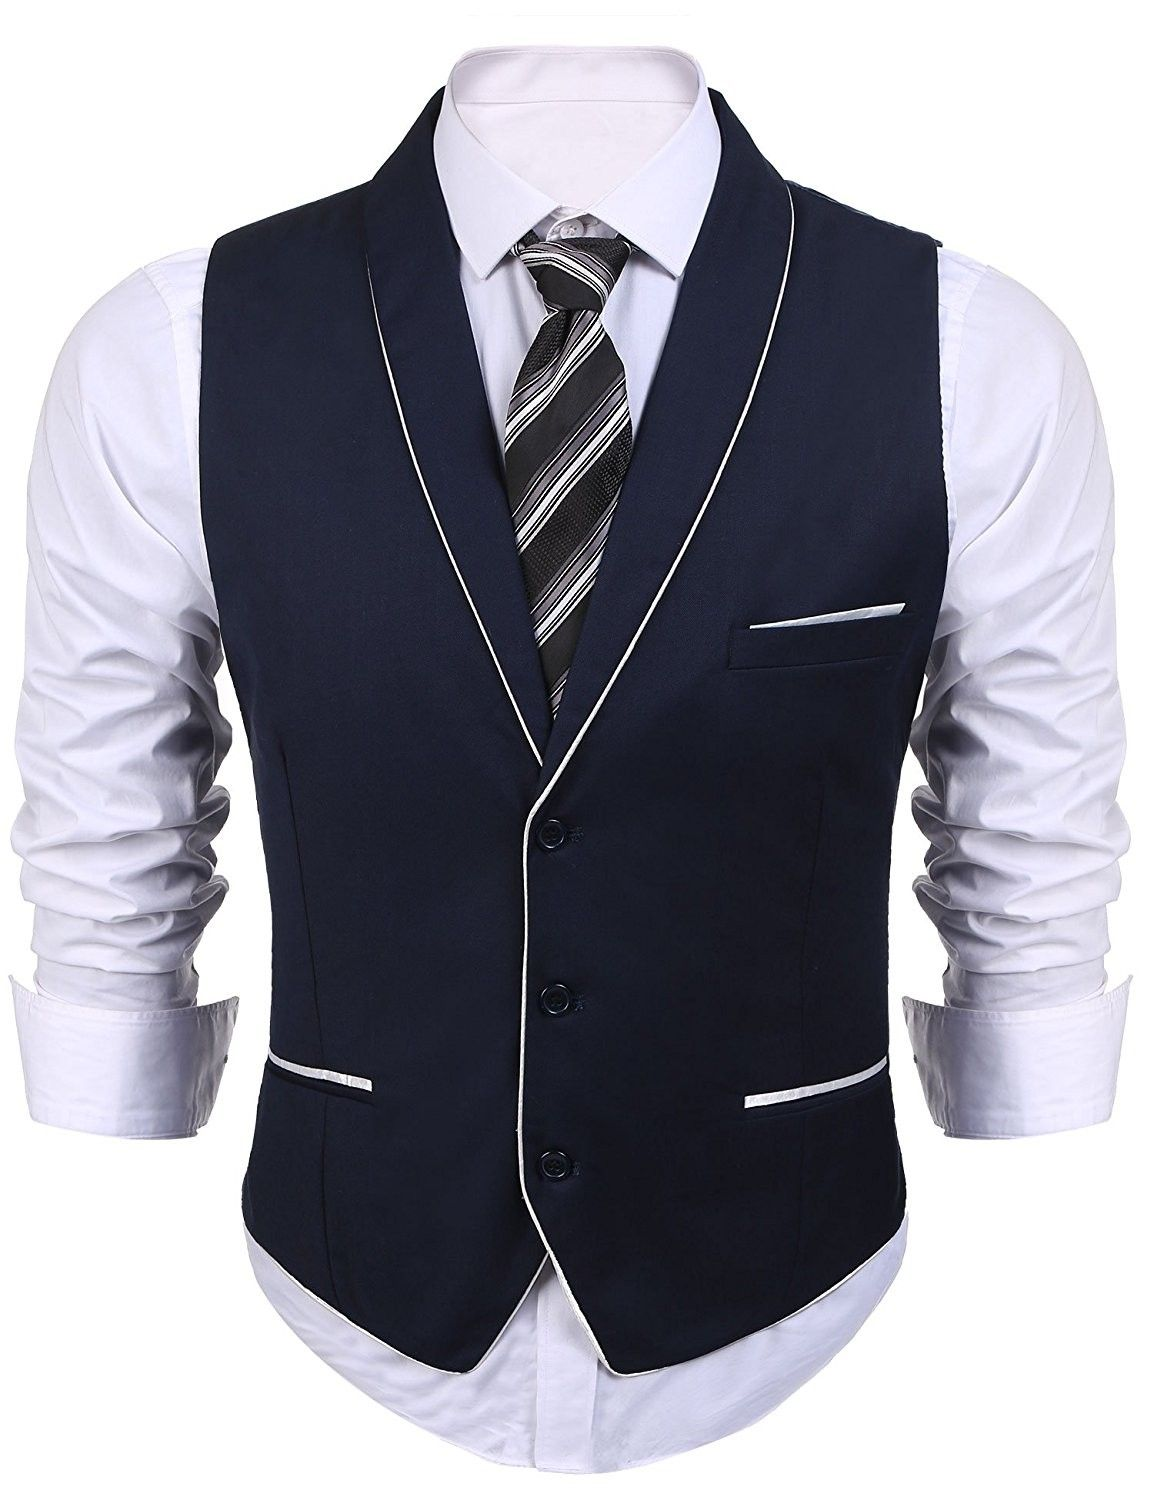 Mens V Neck Formal Chalecos De Hombre Waistcoat Wedding Suit Dress Vest Navy Blue Cd1855etu9t Mens Suit Vest Vest Dress Business Suit Vest,Champagne Silk Slip Wedding Dress